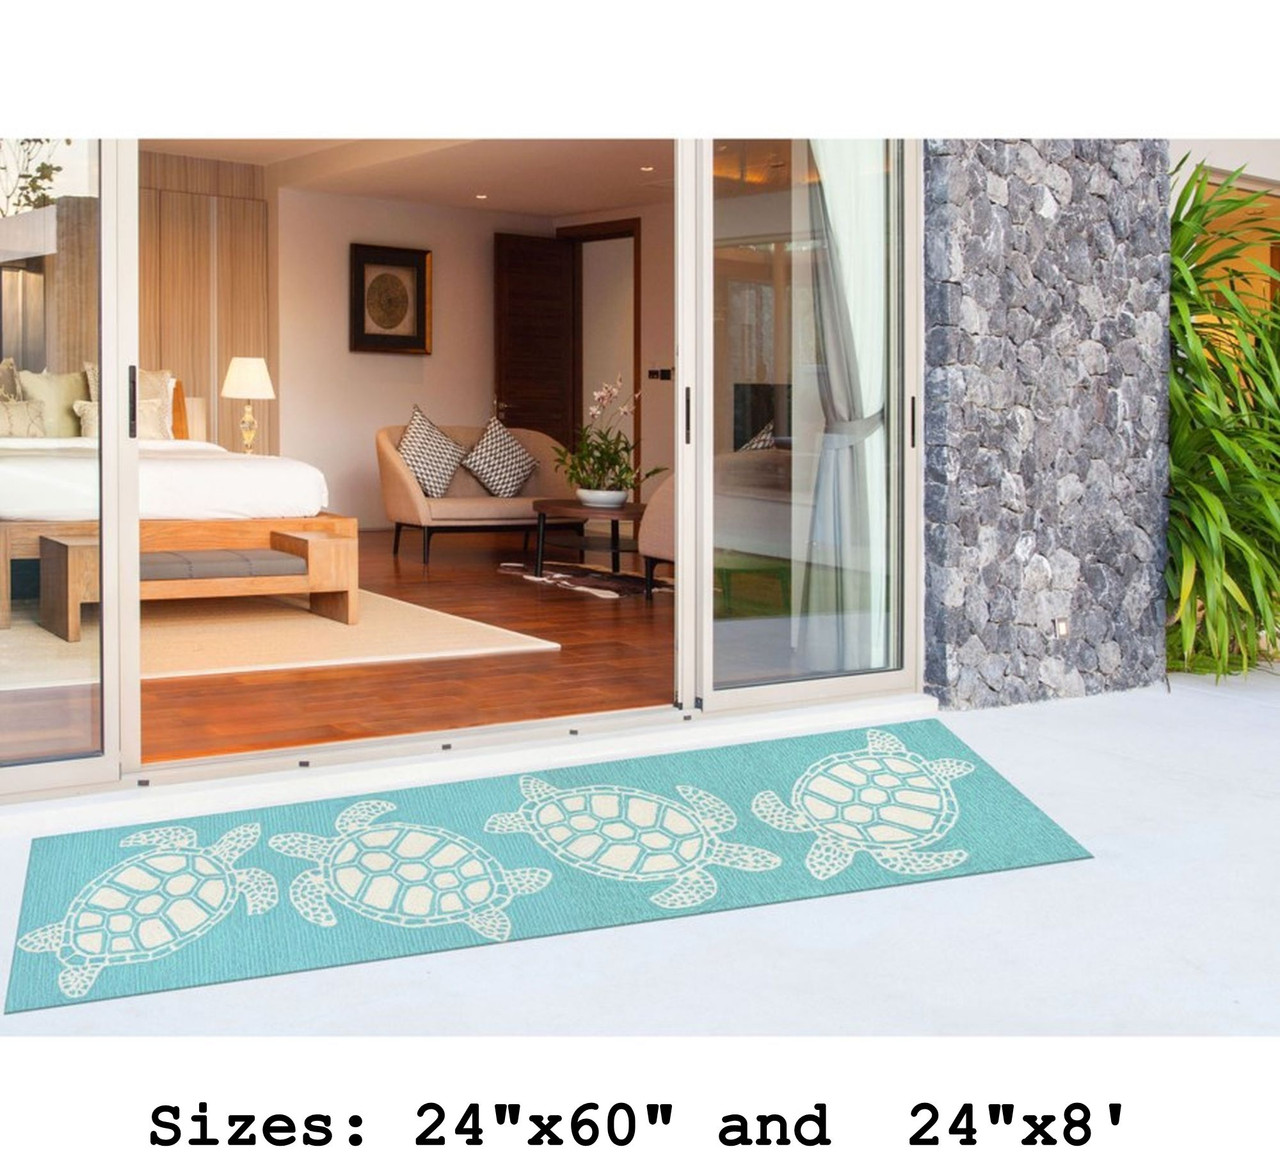 Capri Turtle Indoor/Outdoor Rug - Aqua - Large Runner Lifestyle Available in 6 Sizes